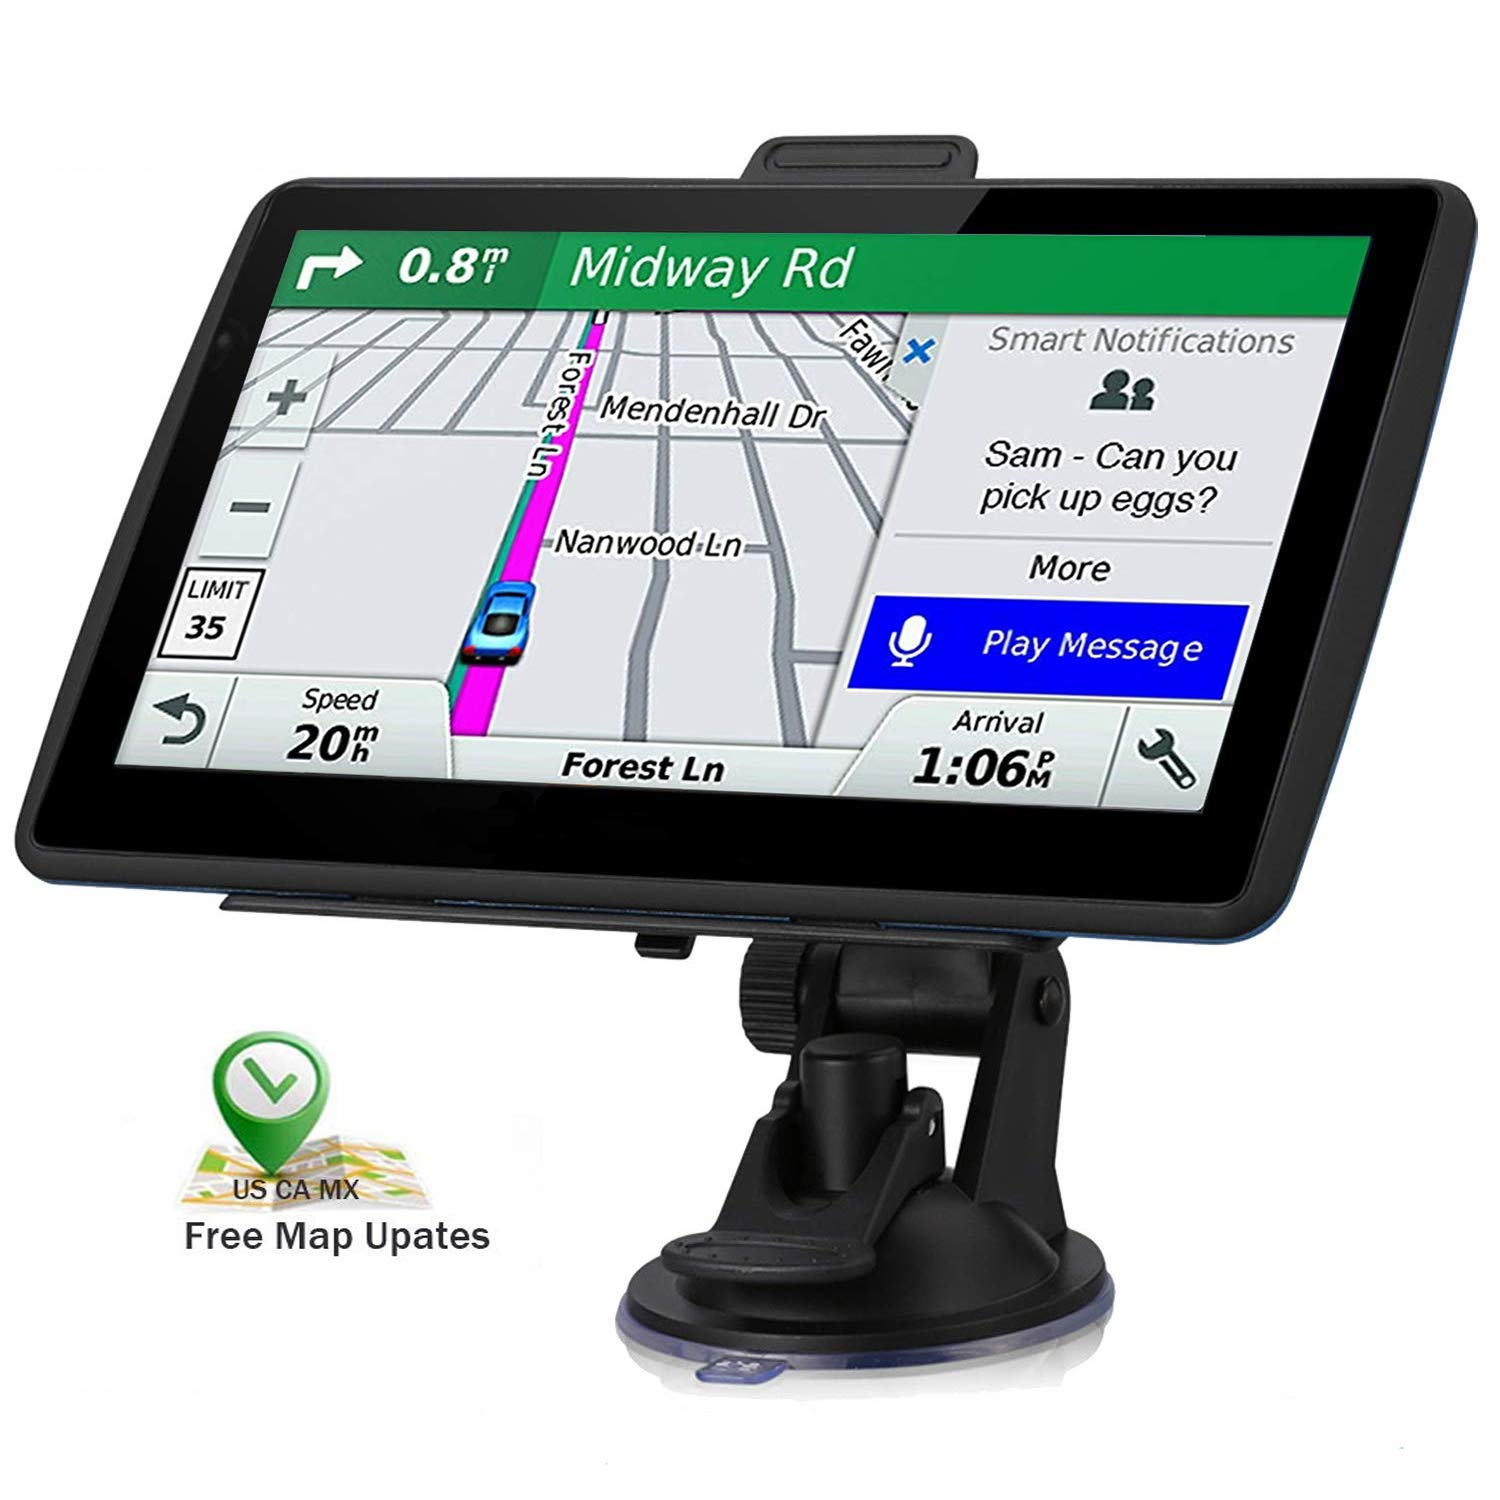 Car GPS Navigation, 7-inch HD GPS Navigation 256-8GB Voice Broadcast Navigation, top-Loading North America map (USA, Canada, Mexico map) Lifetime map Free Update by JANFUN